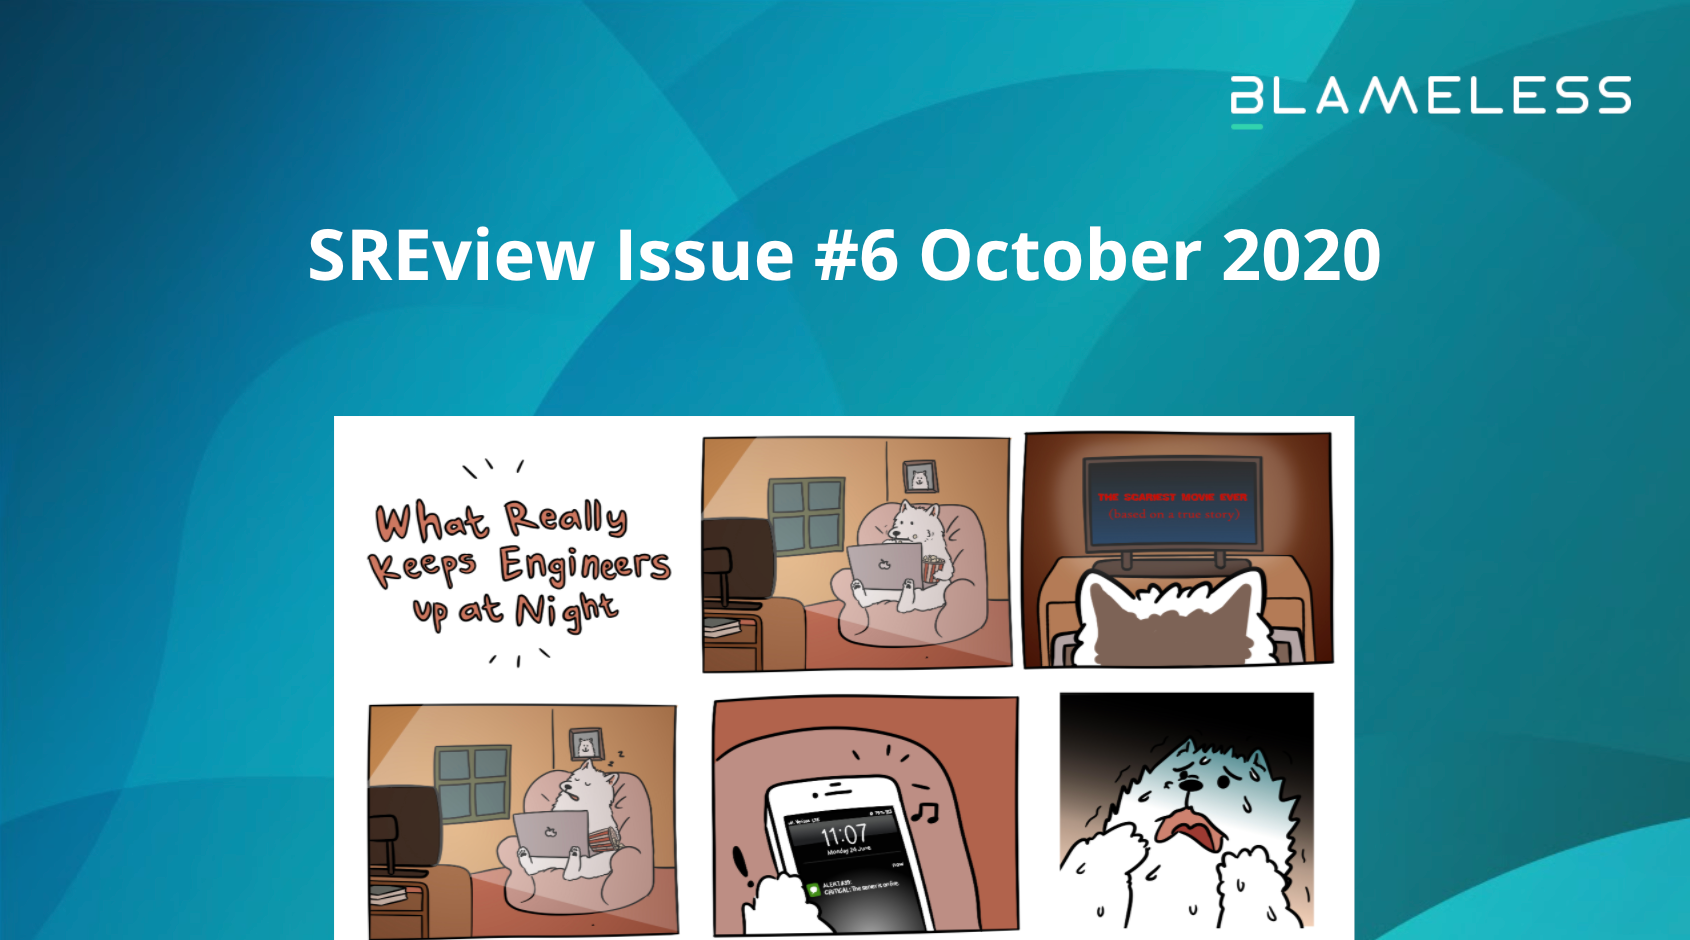 SREview Issue #6 October 2020